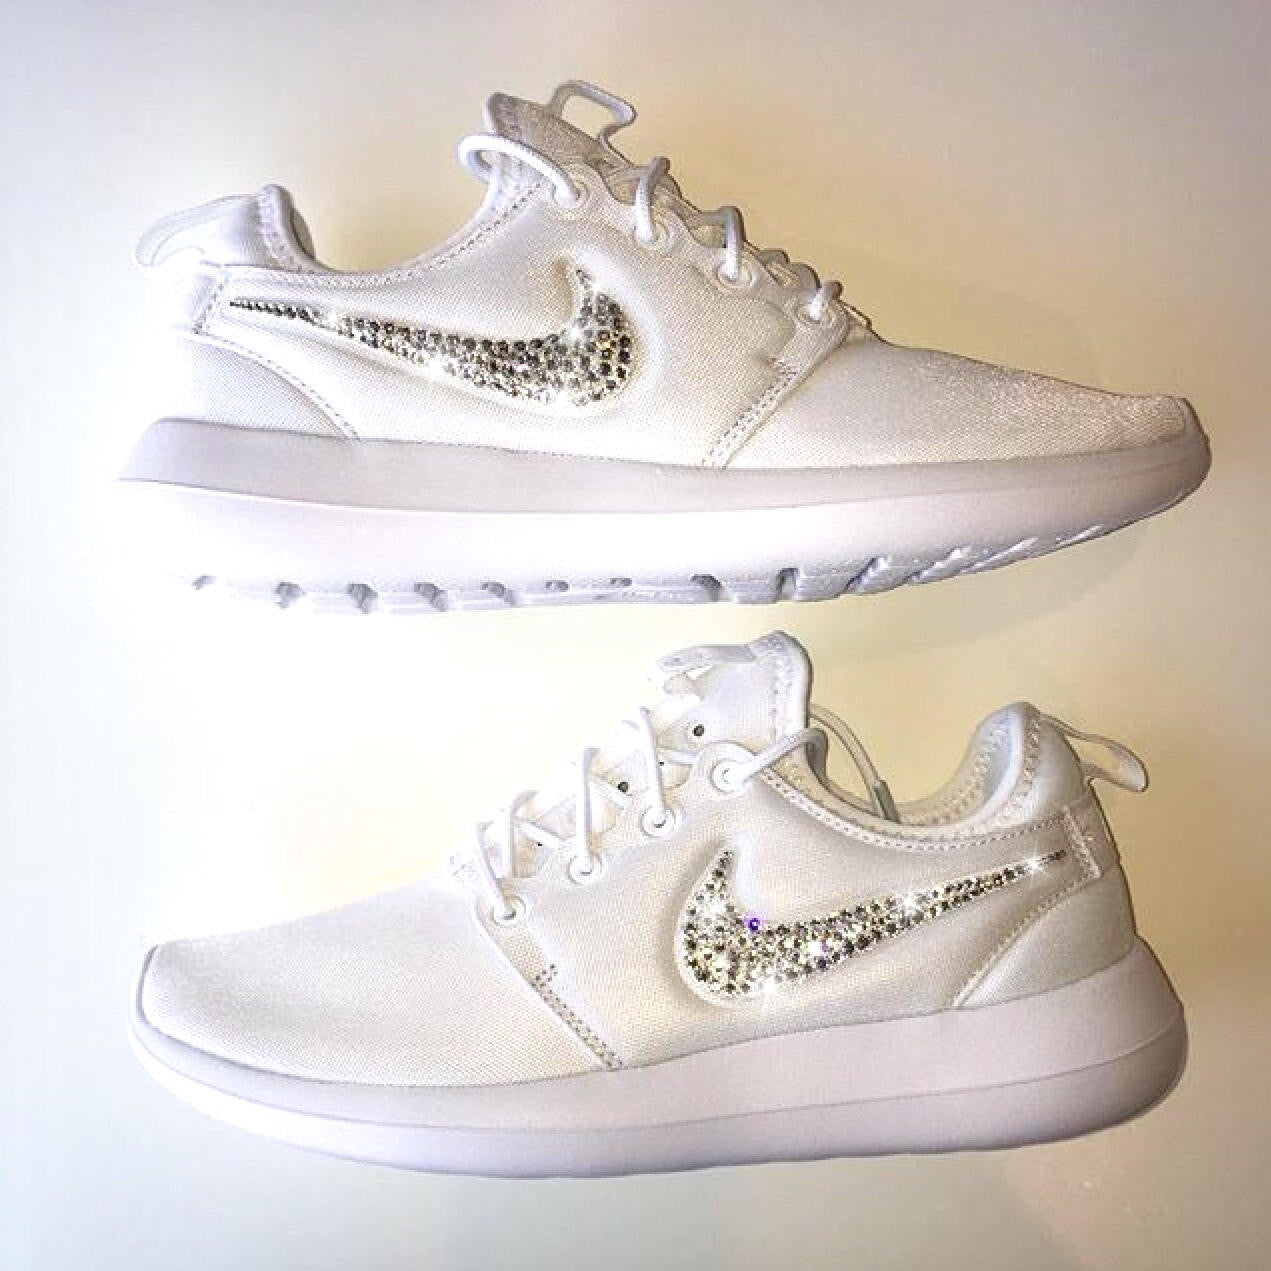 a3e926a814fd ... Bling Nike Roshe Two Shoes with Swarovski Crystals   White   Bedazzled  Authentic Swarovski Crystal Rhinestones ...